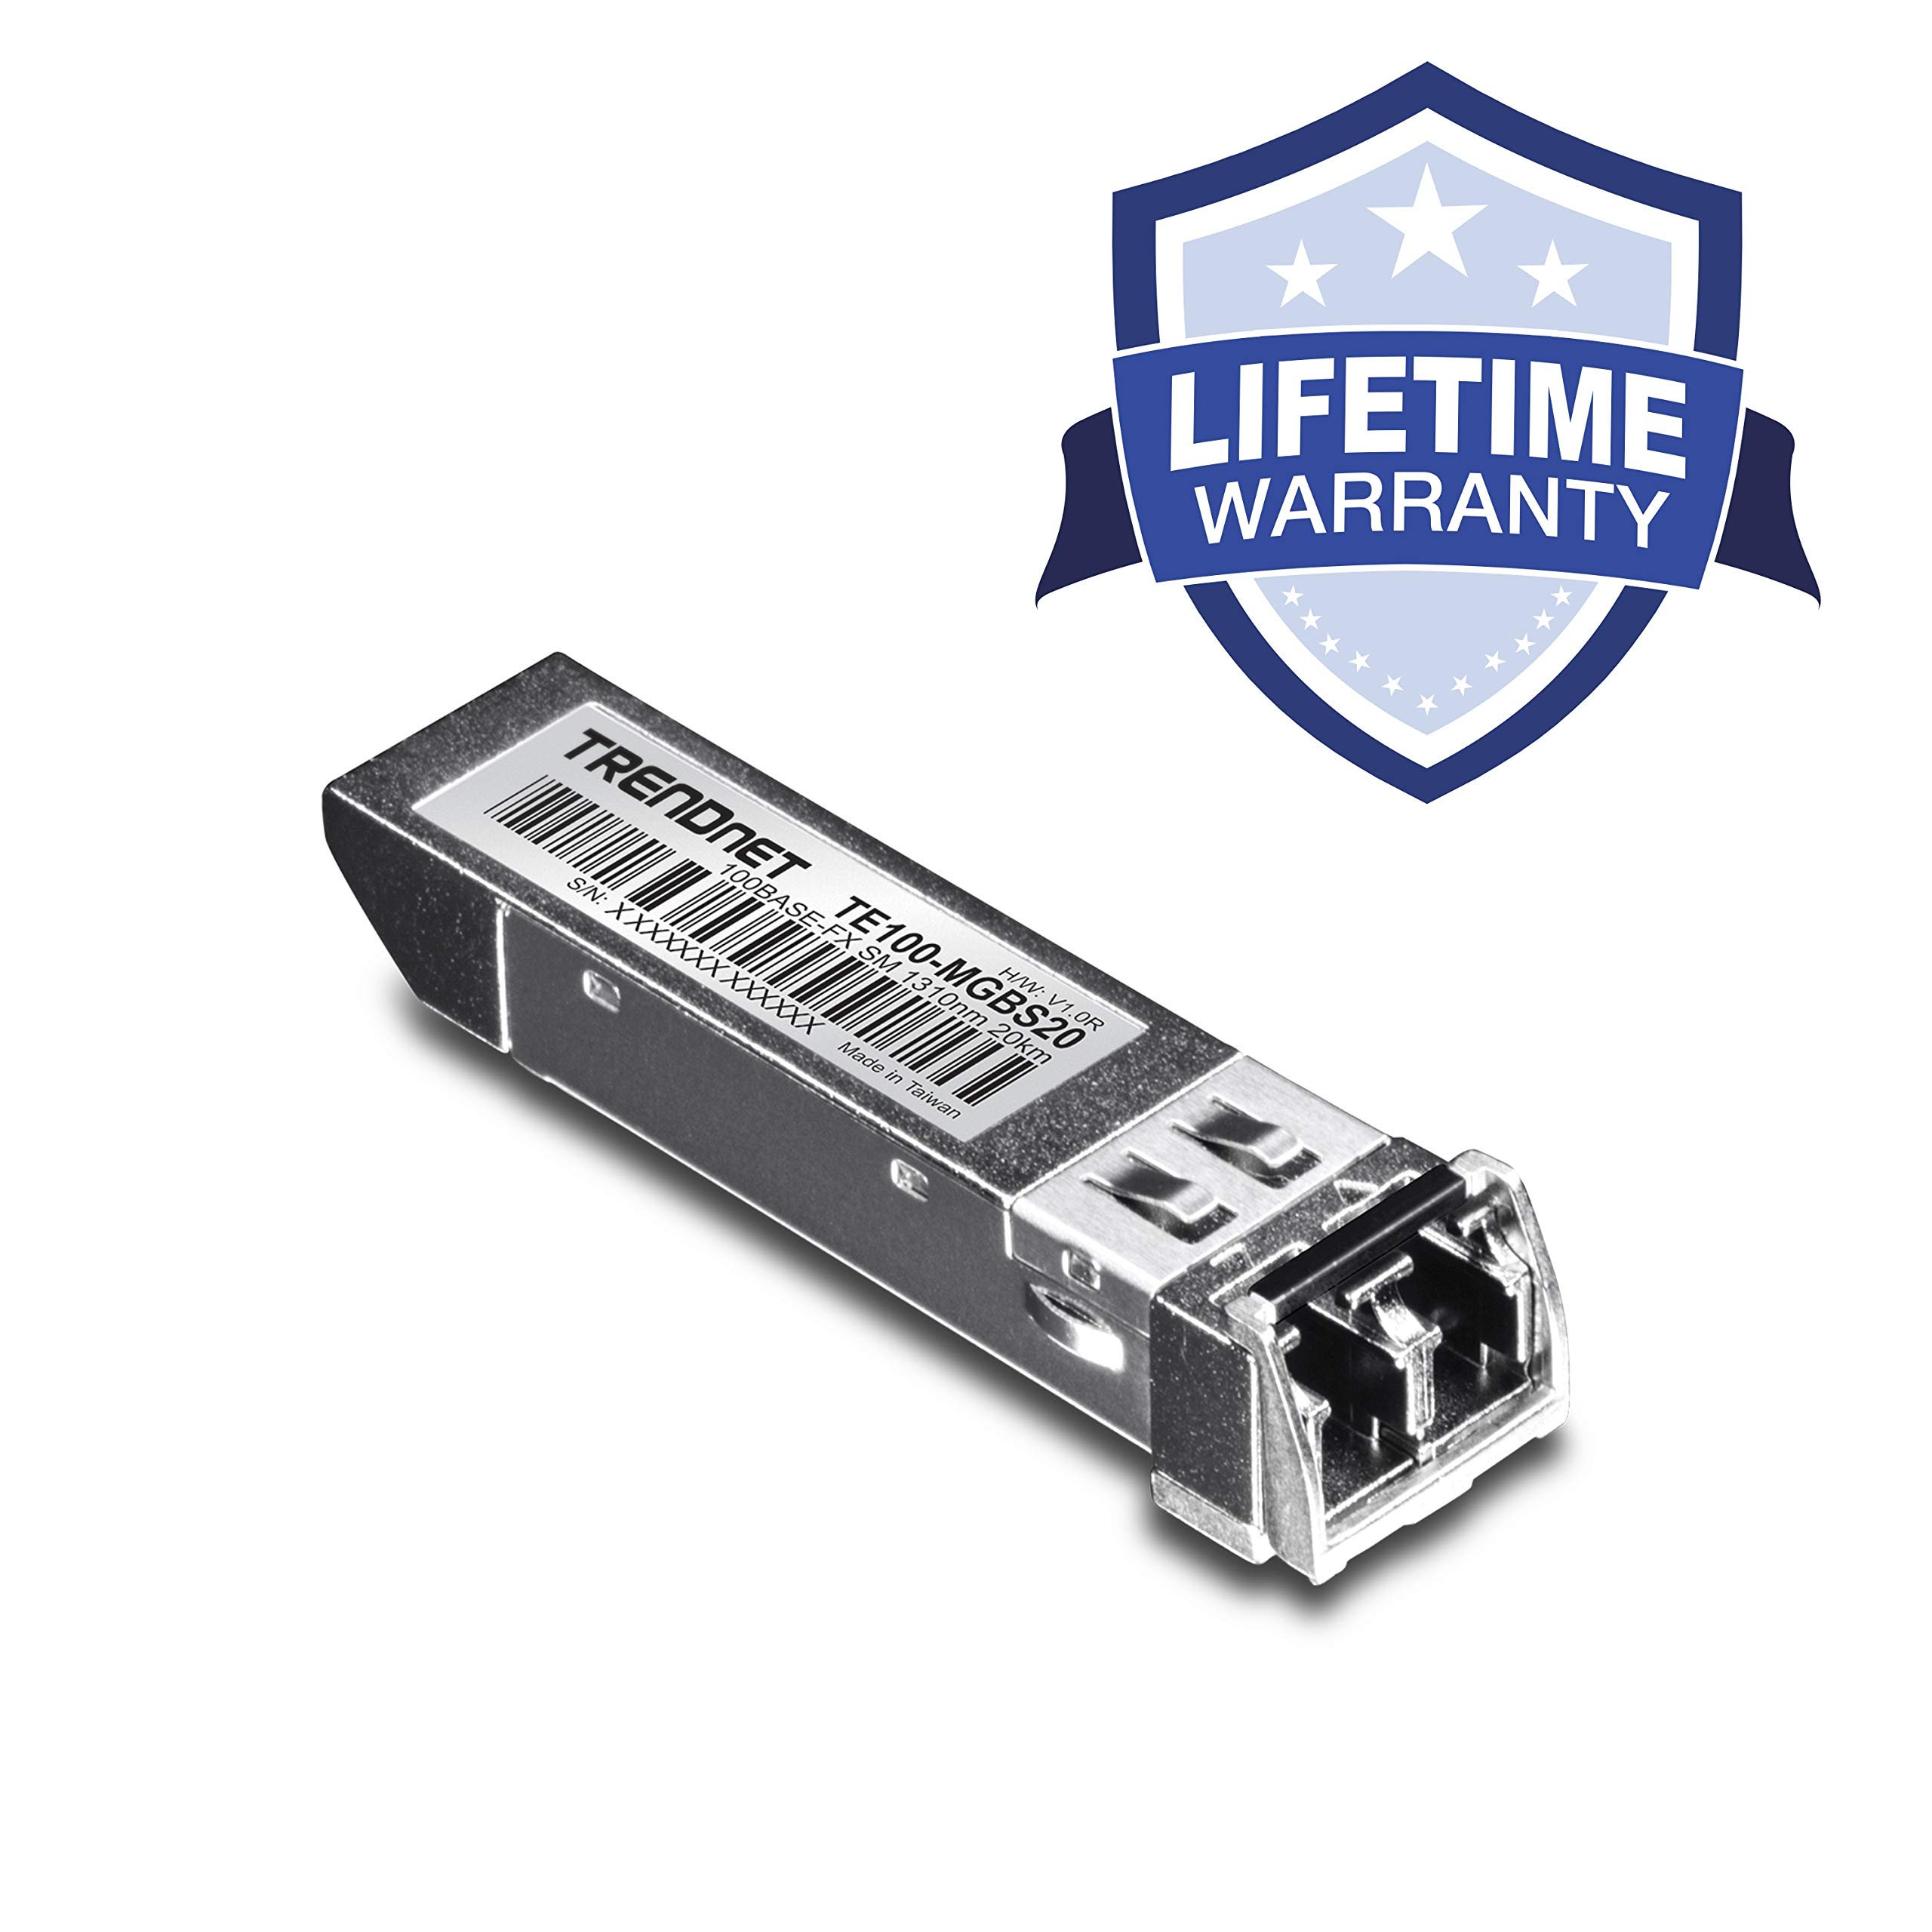 TRENDnet 100Base-FX SFP Single-Mode LC Module, Up to 20 km, Standard SFP Compatible, Up to 155Mbps Connection Speeds, 1310nm, Lifetime Protection, TE100-MGBS20